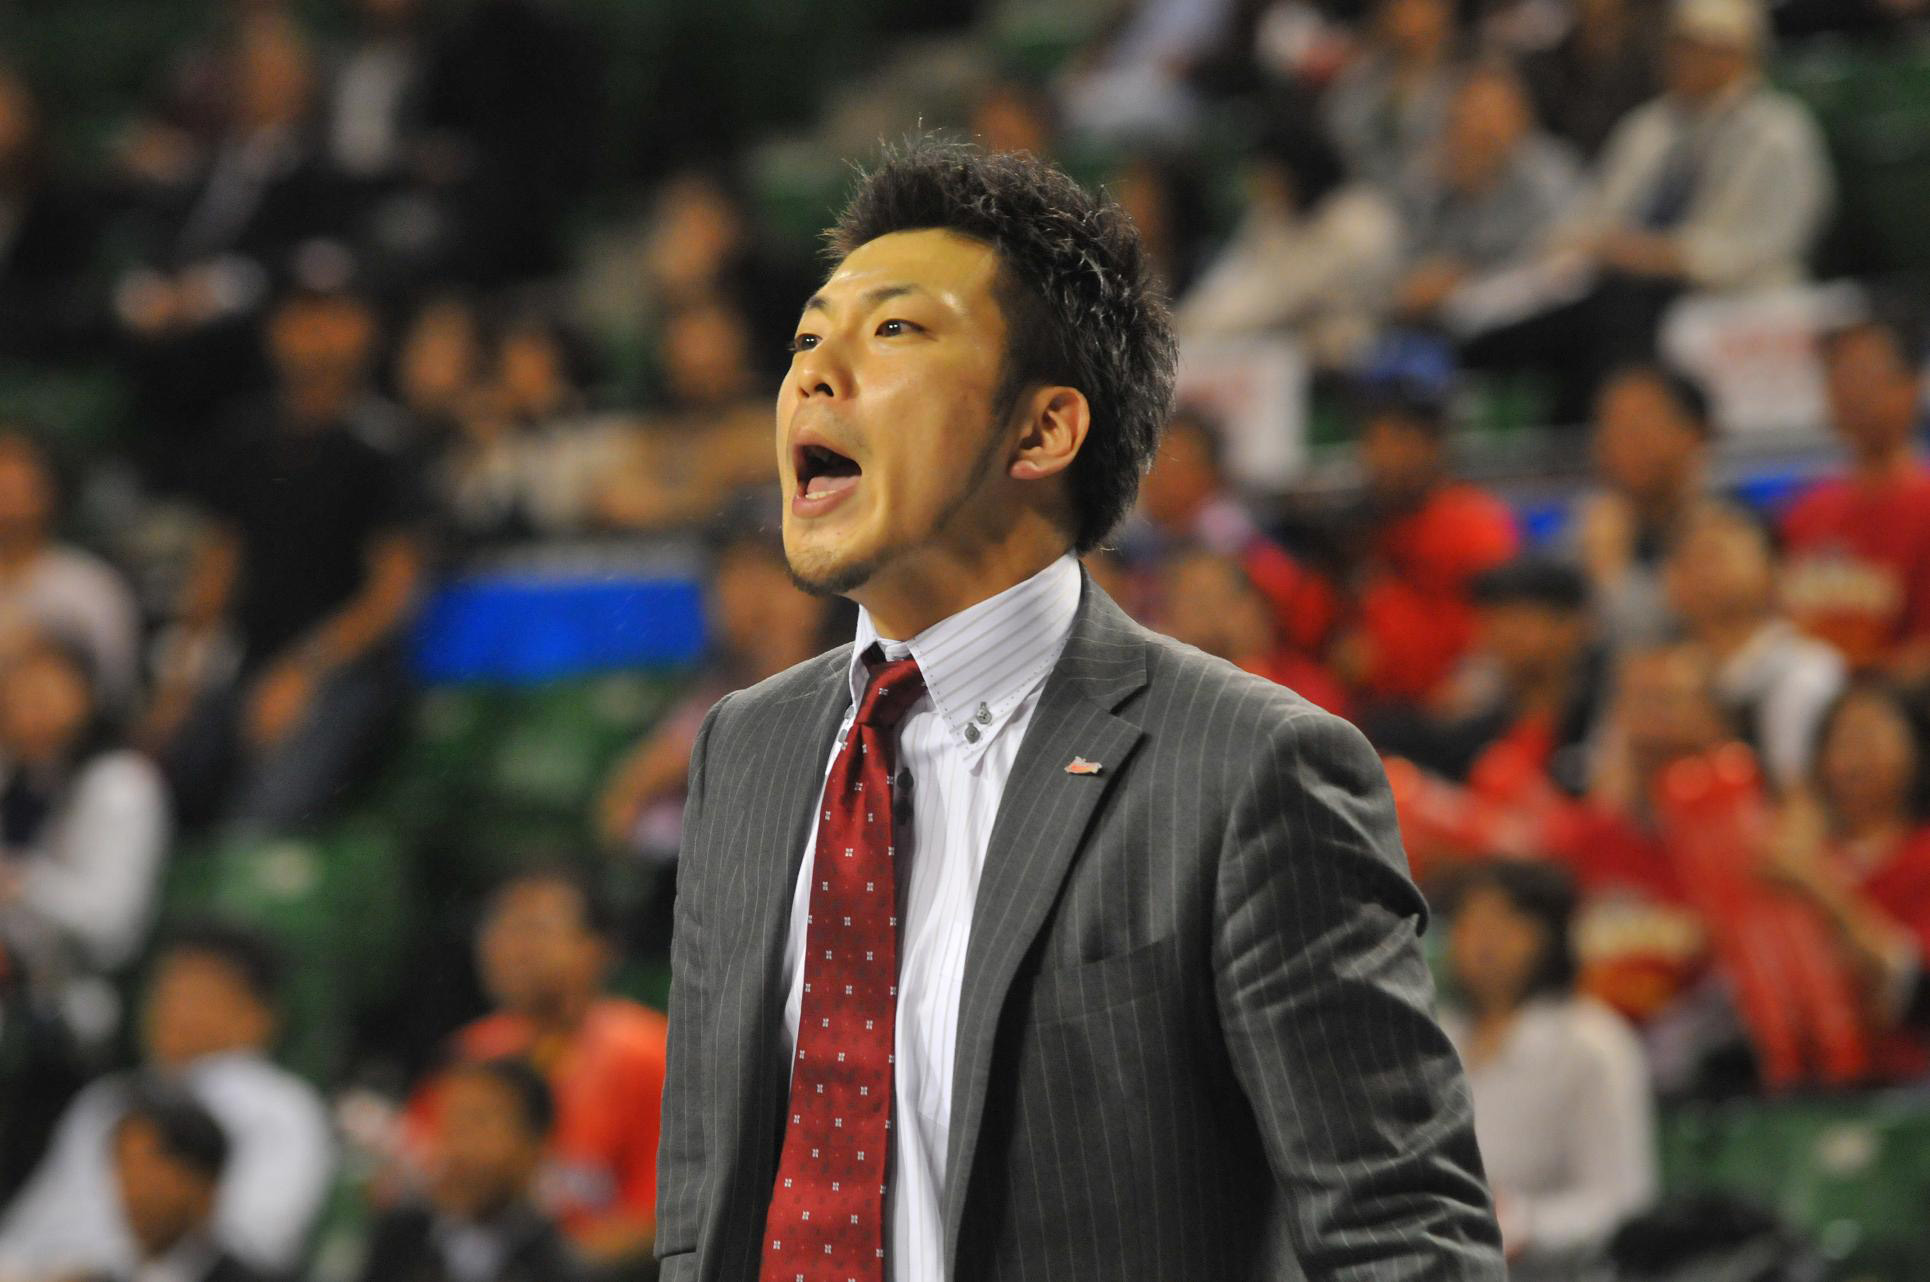 On the move again: Koto Toyama is the new coach of the Shiga Lakestars. He will lead his fourth bj-league team in as many seasons for the 2014-15 campaign.   MIYAZAKI SHINING SUNS/BJ-LEAGUE